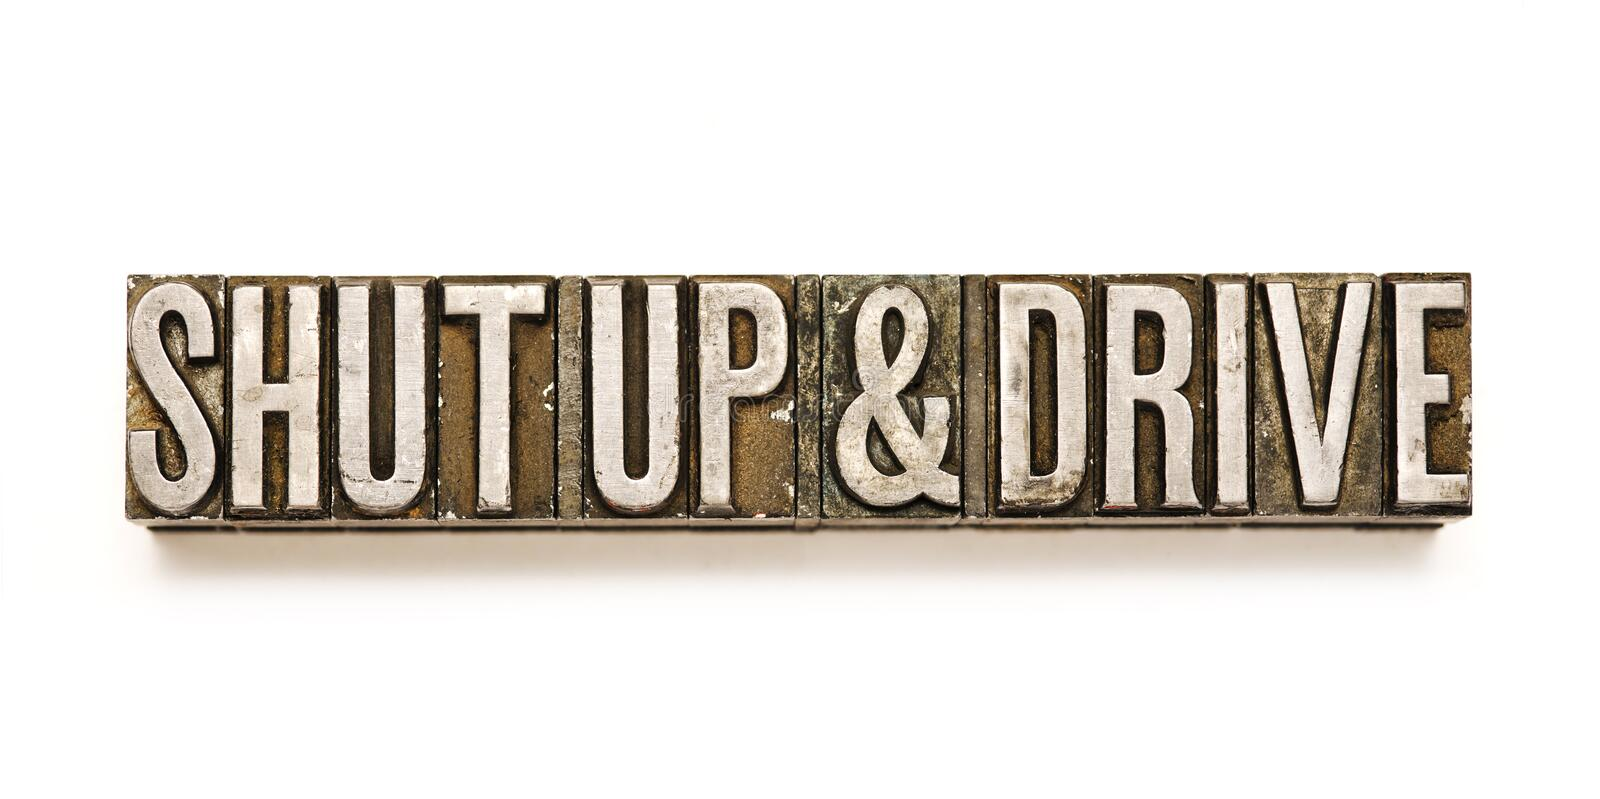 Shut Up & Drive. The phrase `Shut Up & Drive` in letterpress type. Cross processed, narrow focus royalty free stock photography